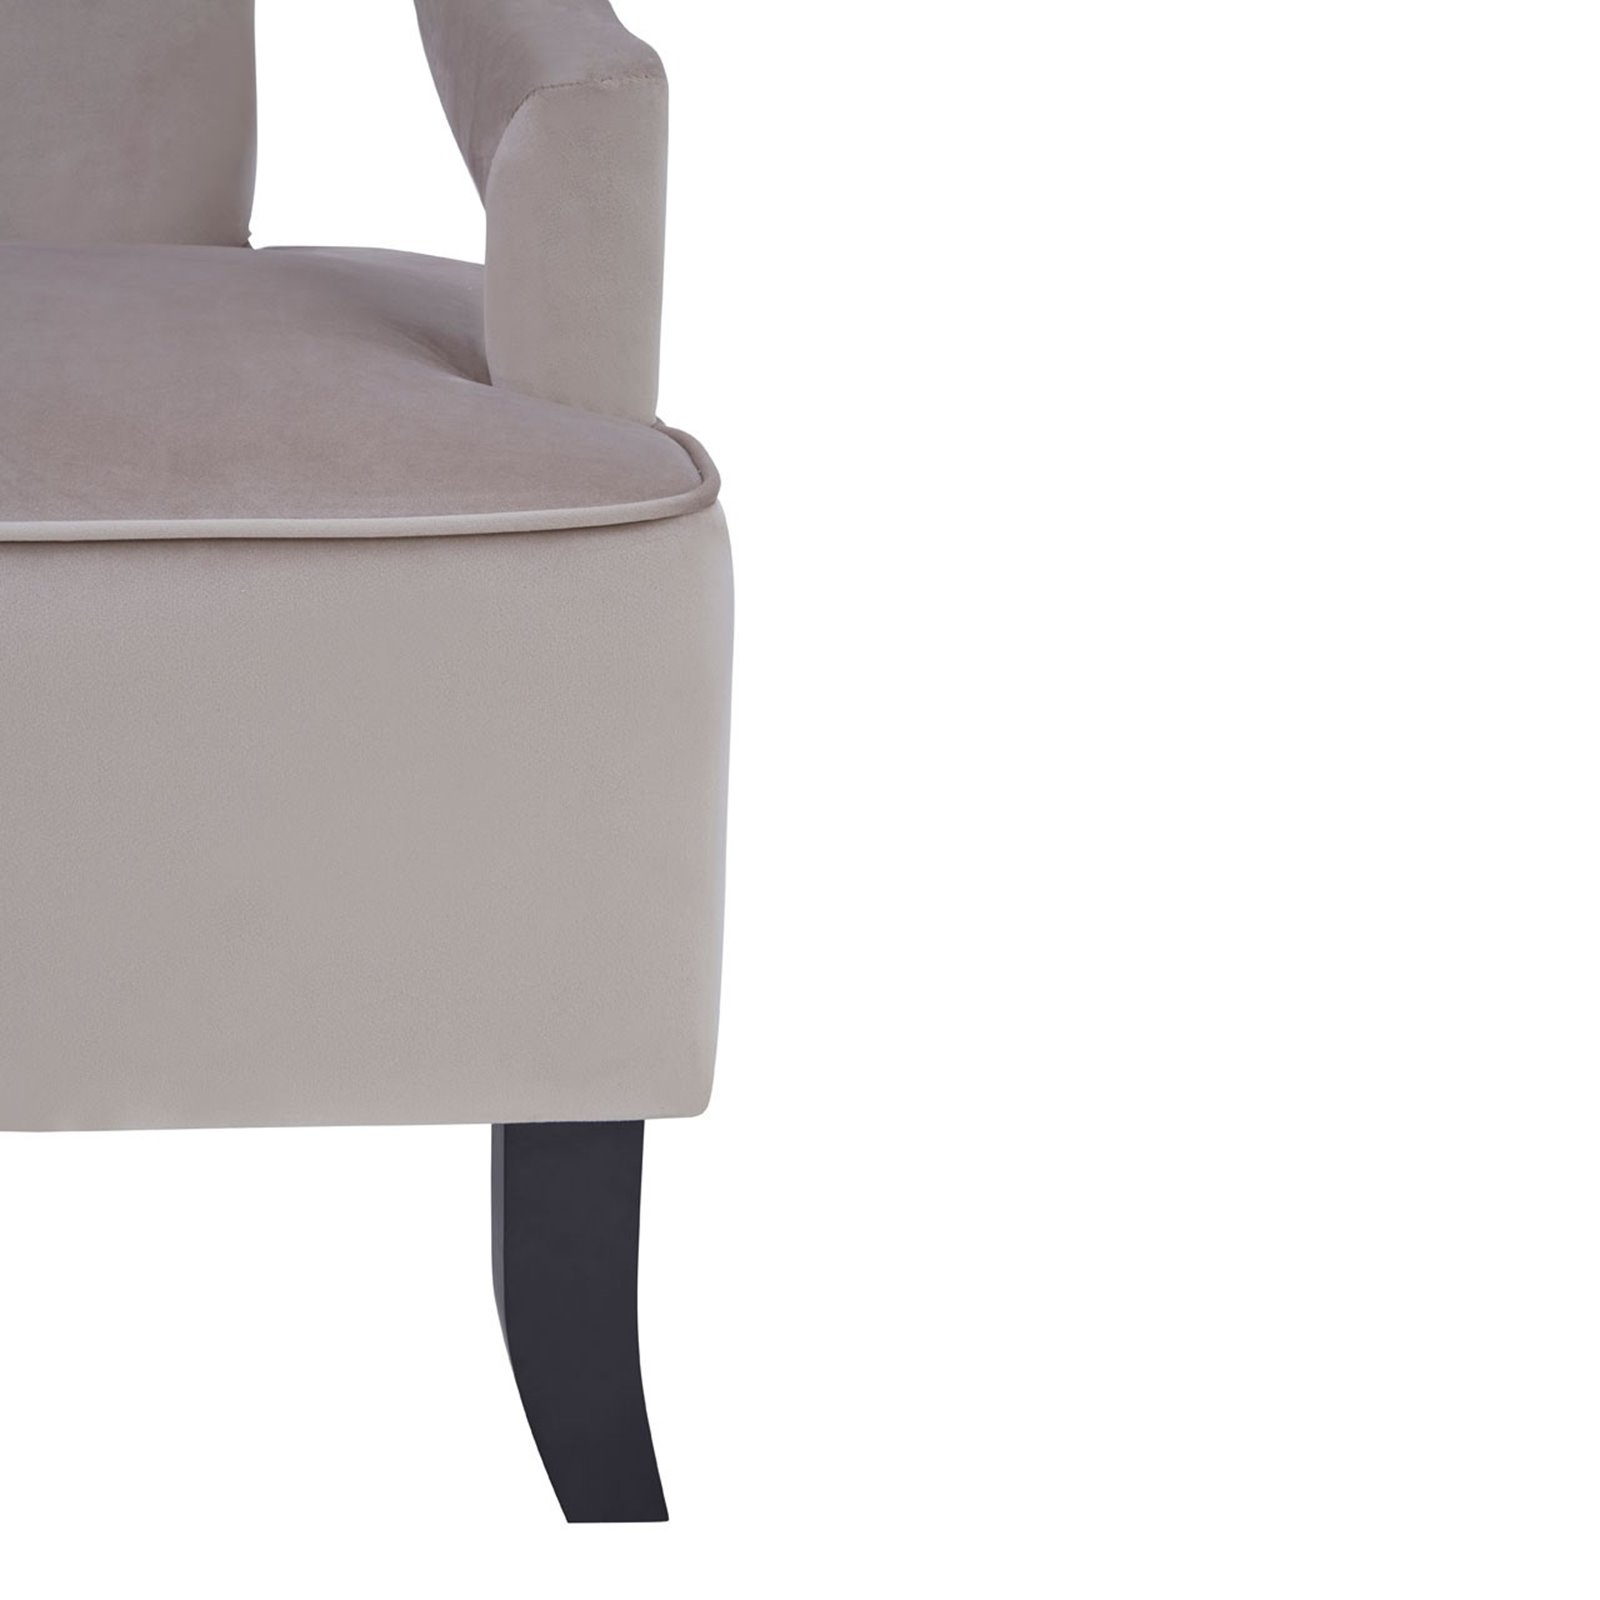 Hermitage Mink Cut Out Armchair Image